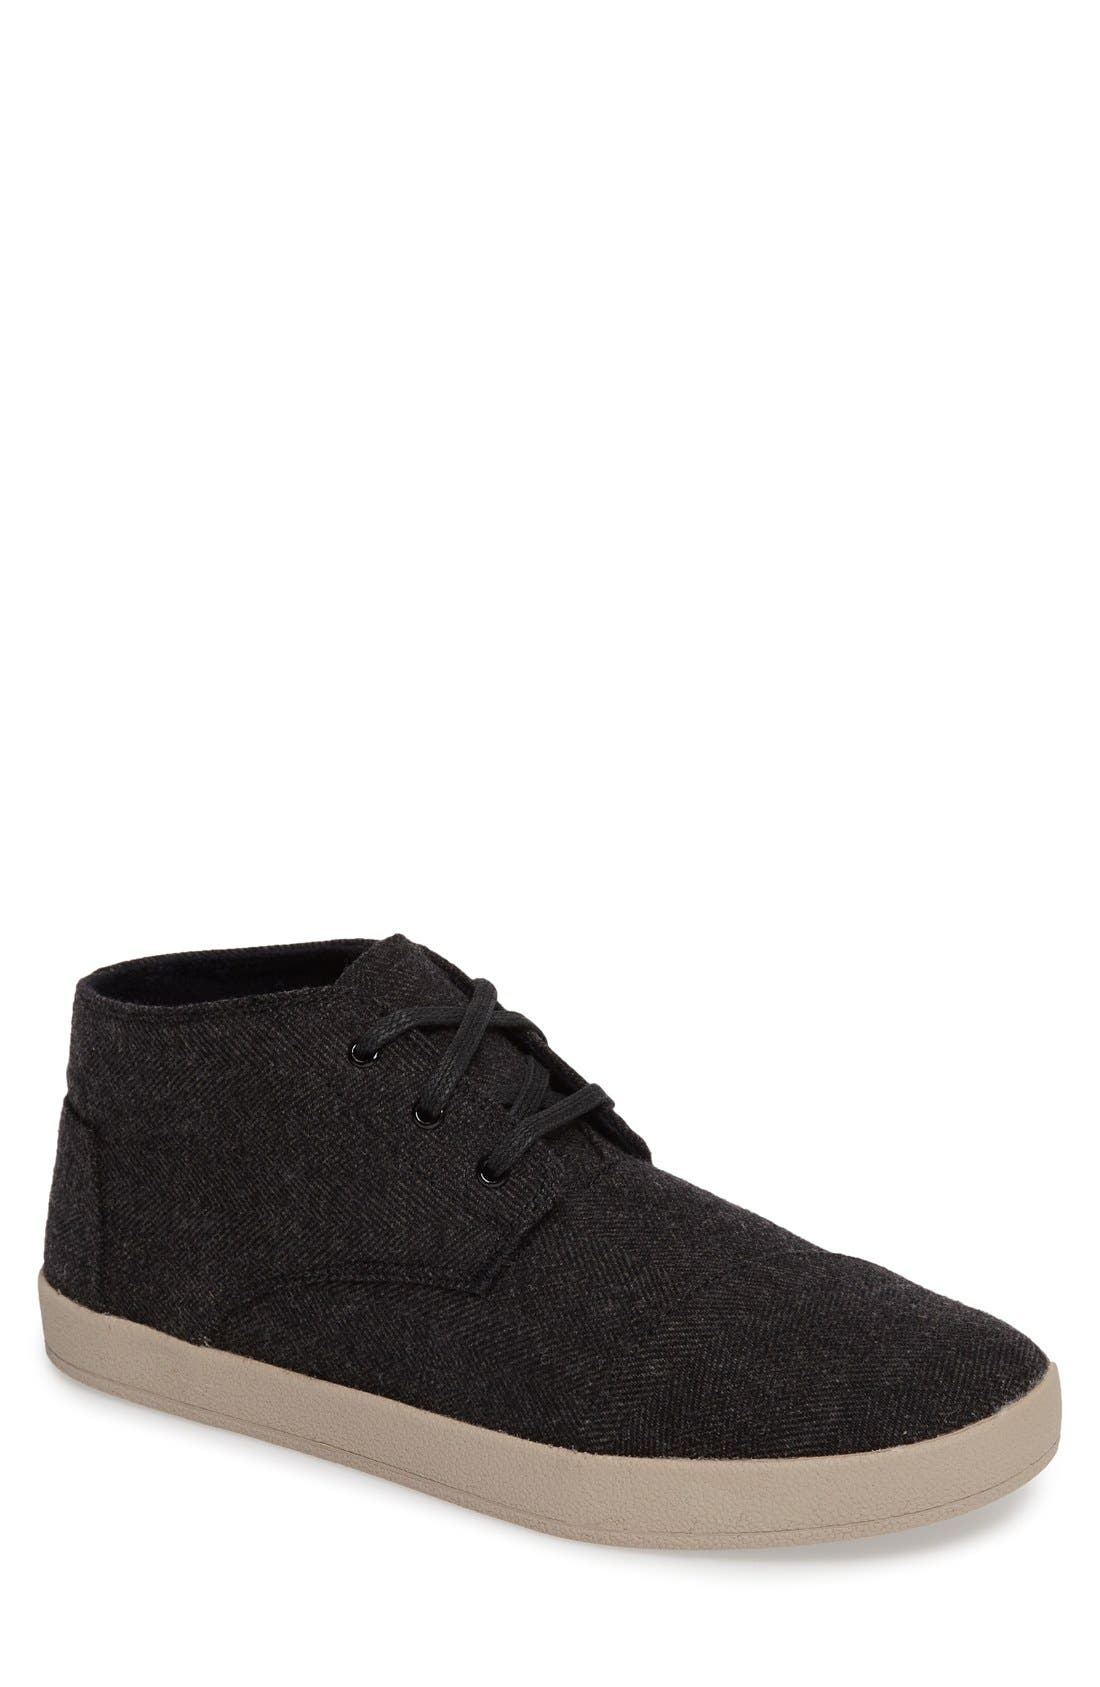 'Paseo Mid' Sneaker,                         Main,                         color,